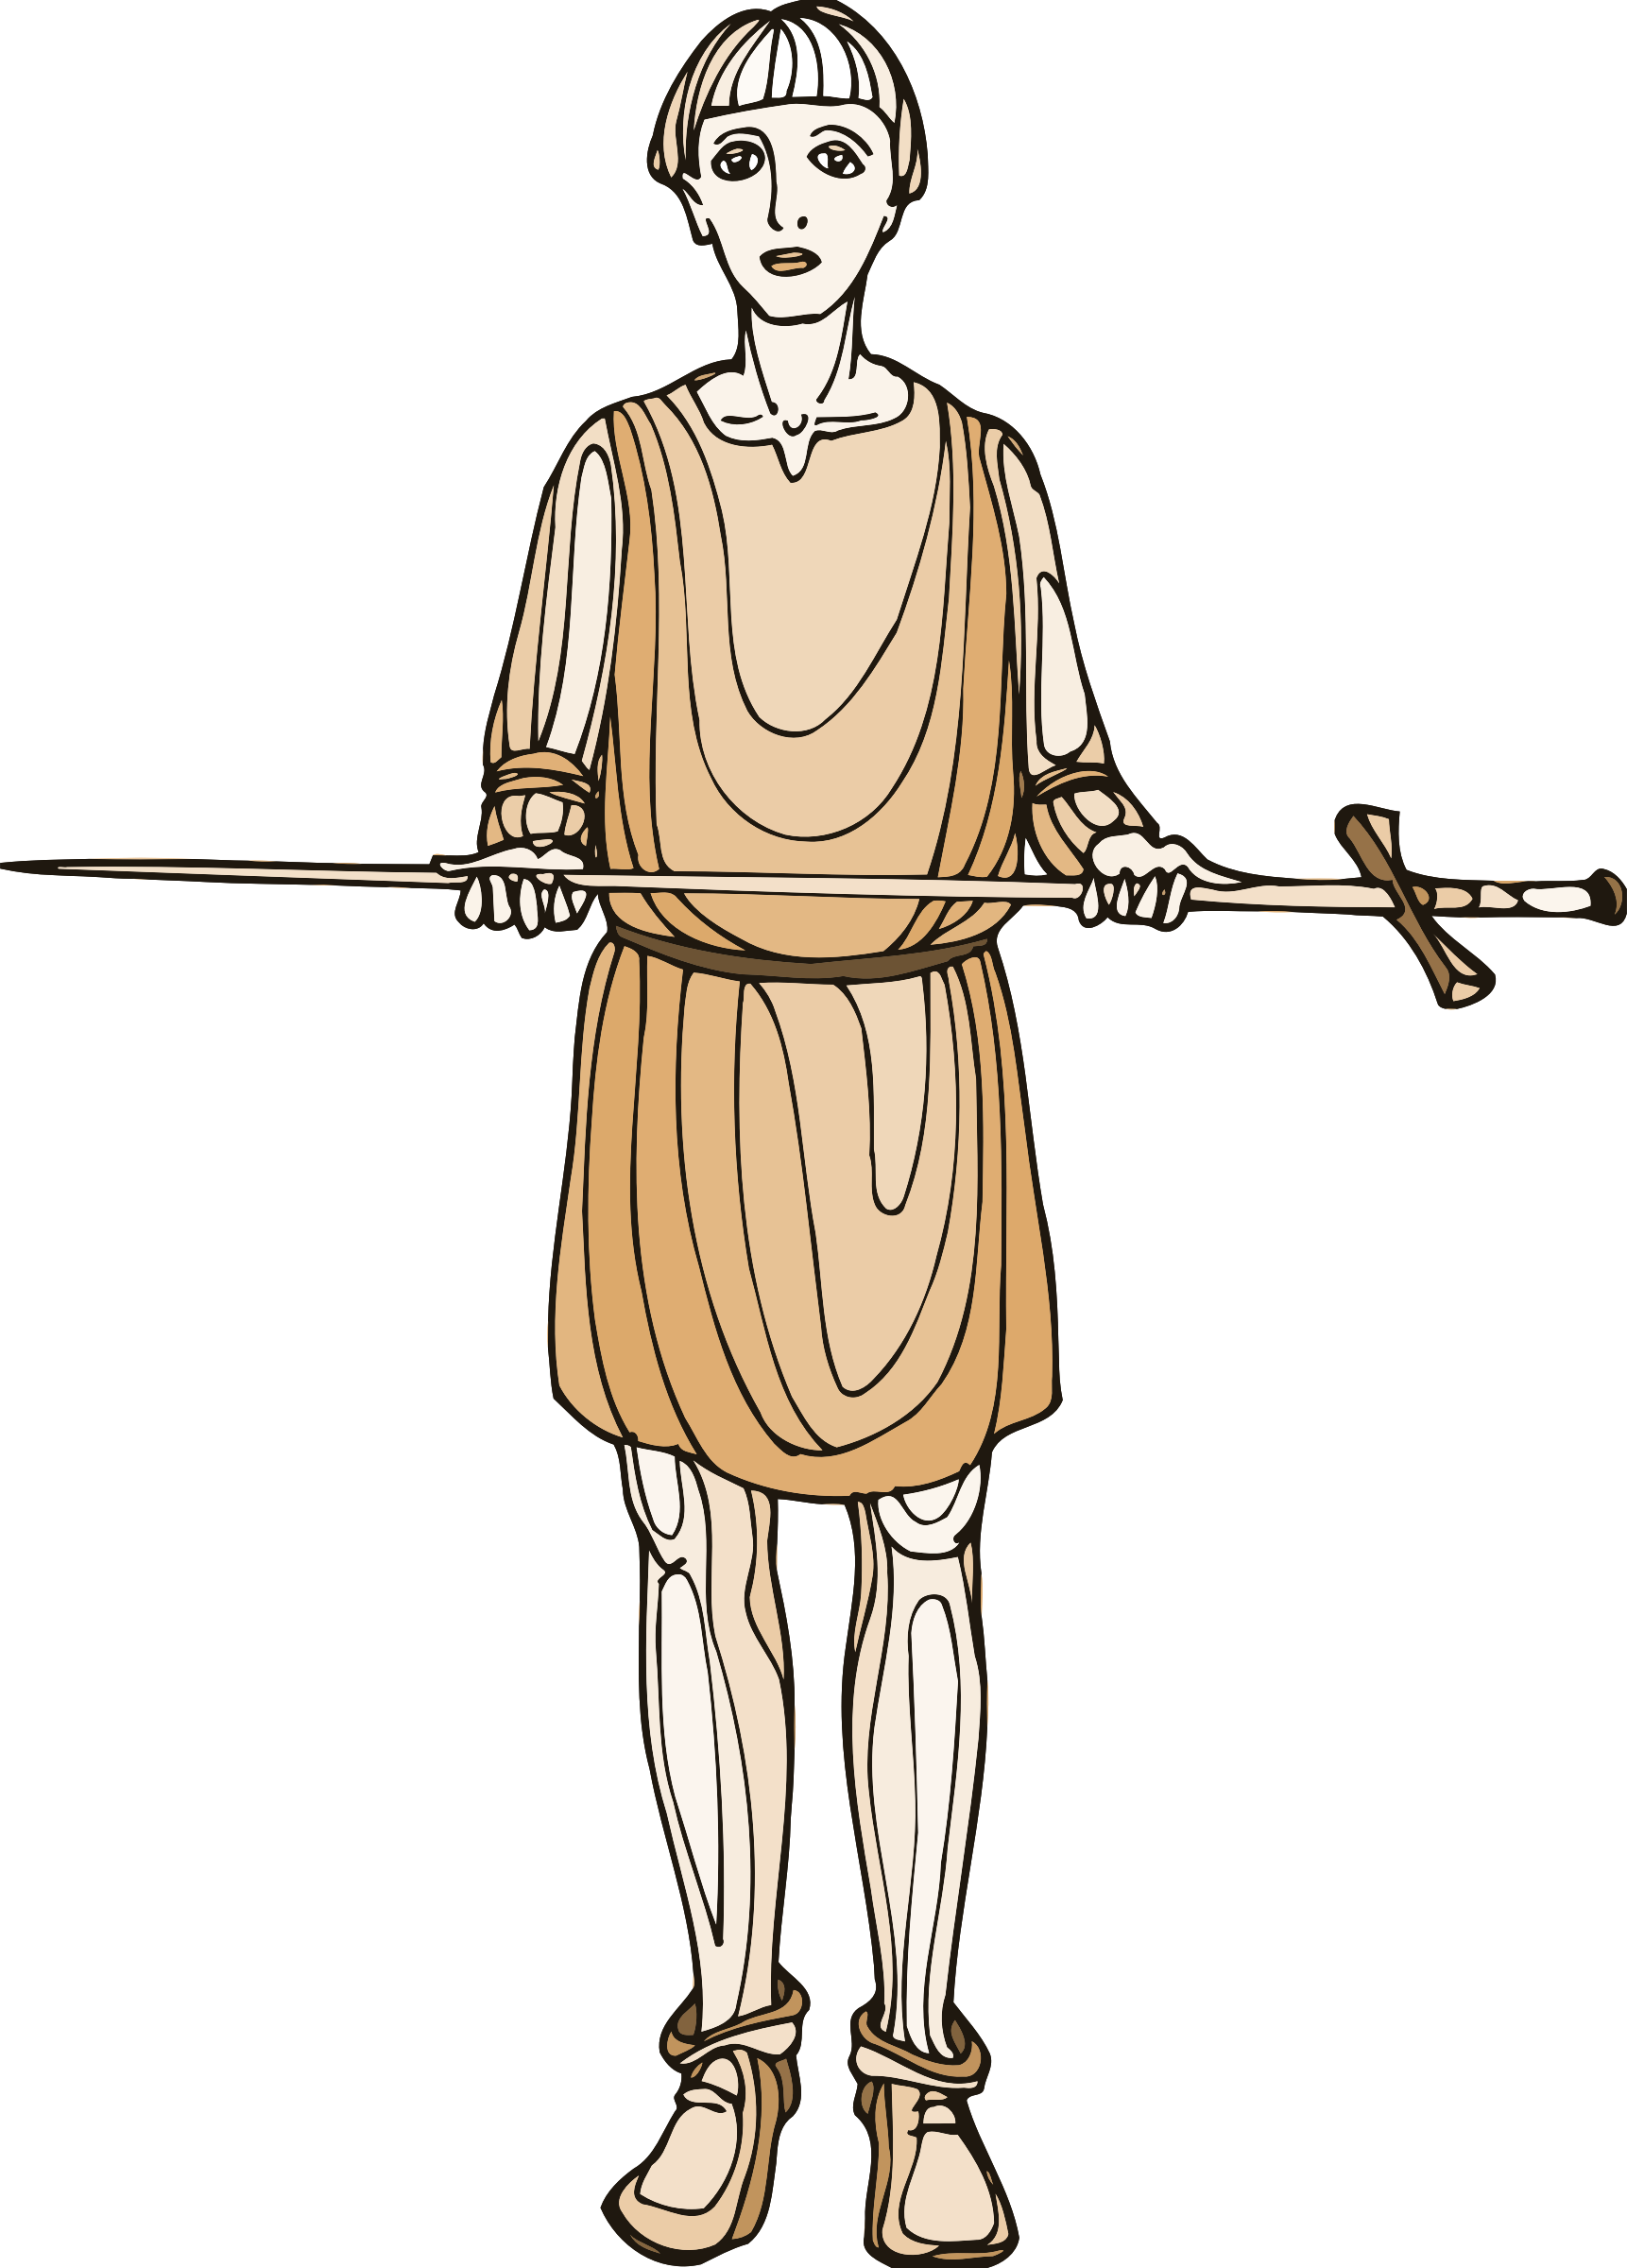 Shakespeare characters - sword bearer by Firkin